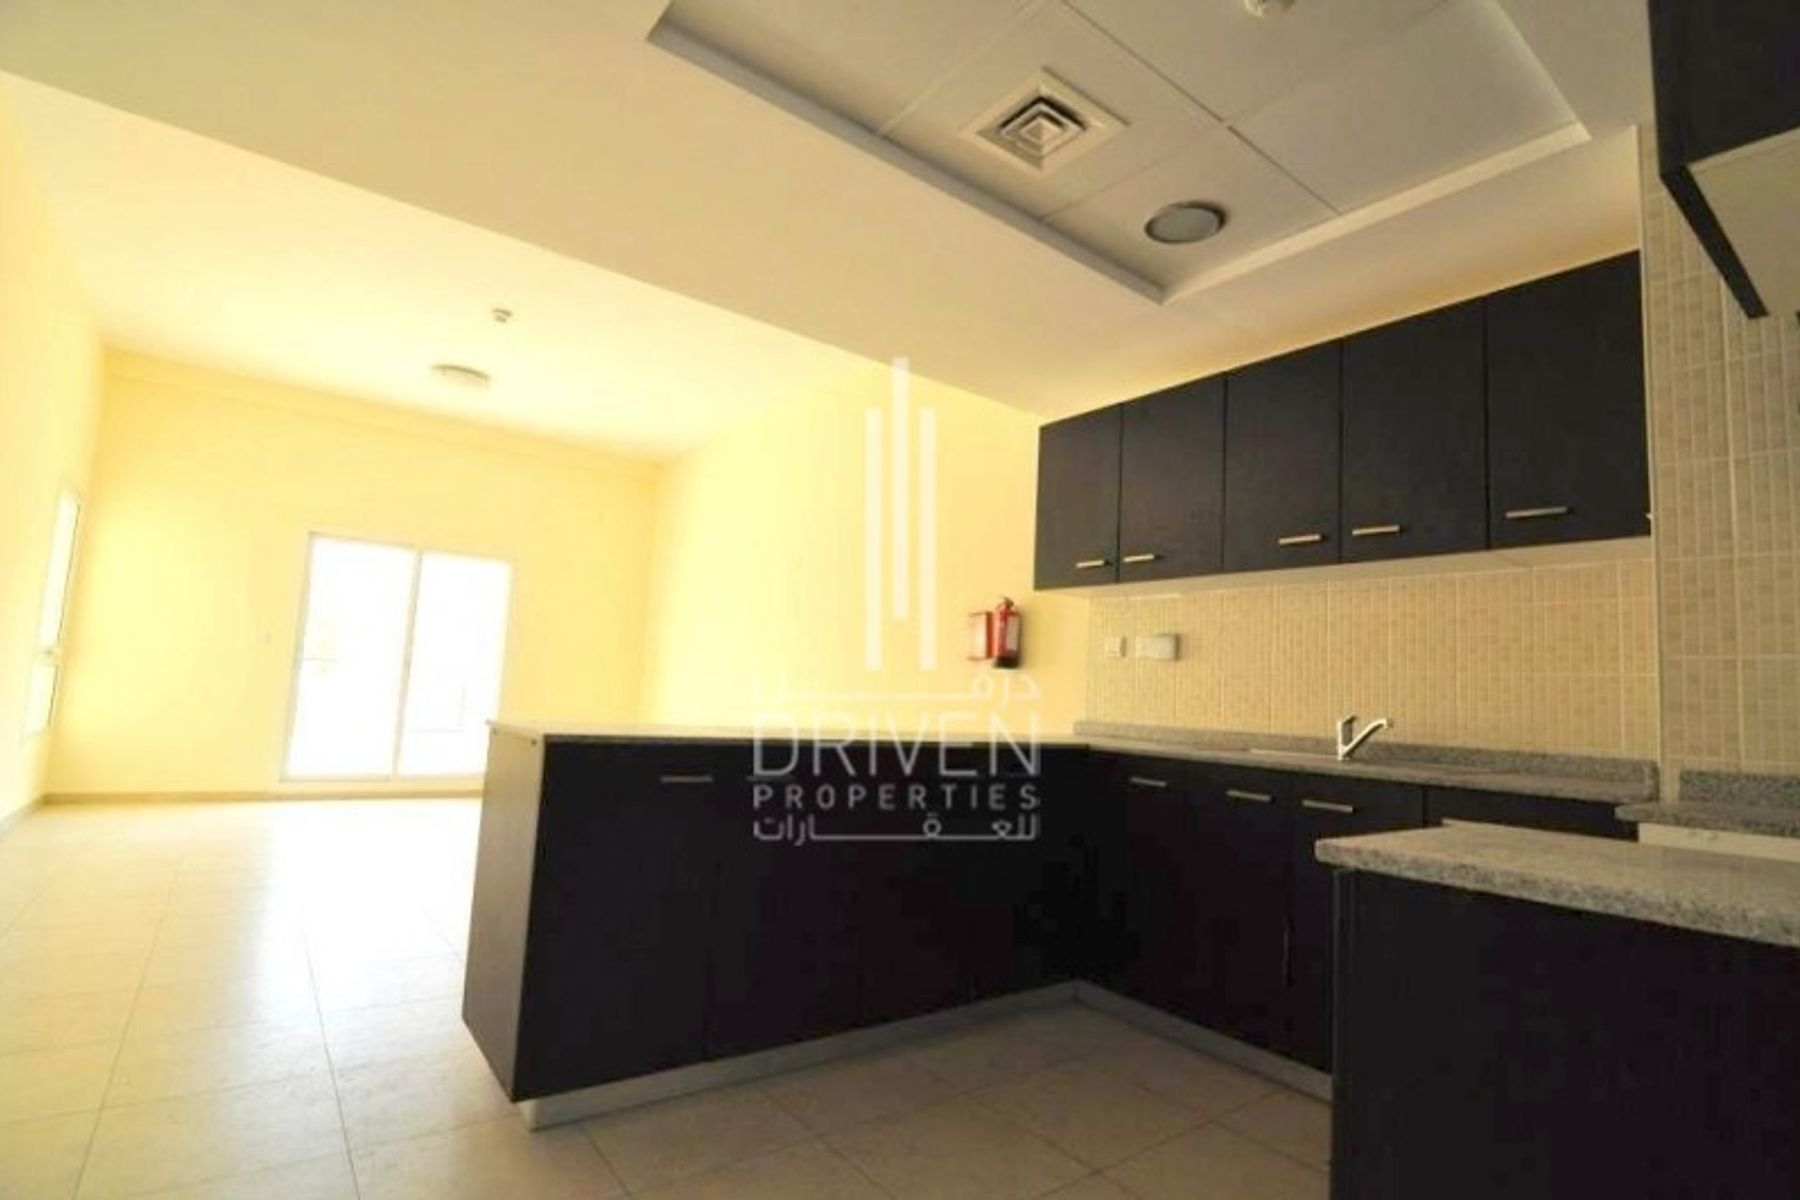 Apartment for Sale in Al Thamam 47, Remraam